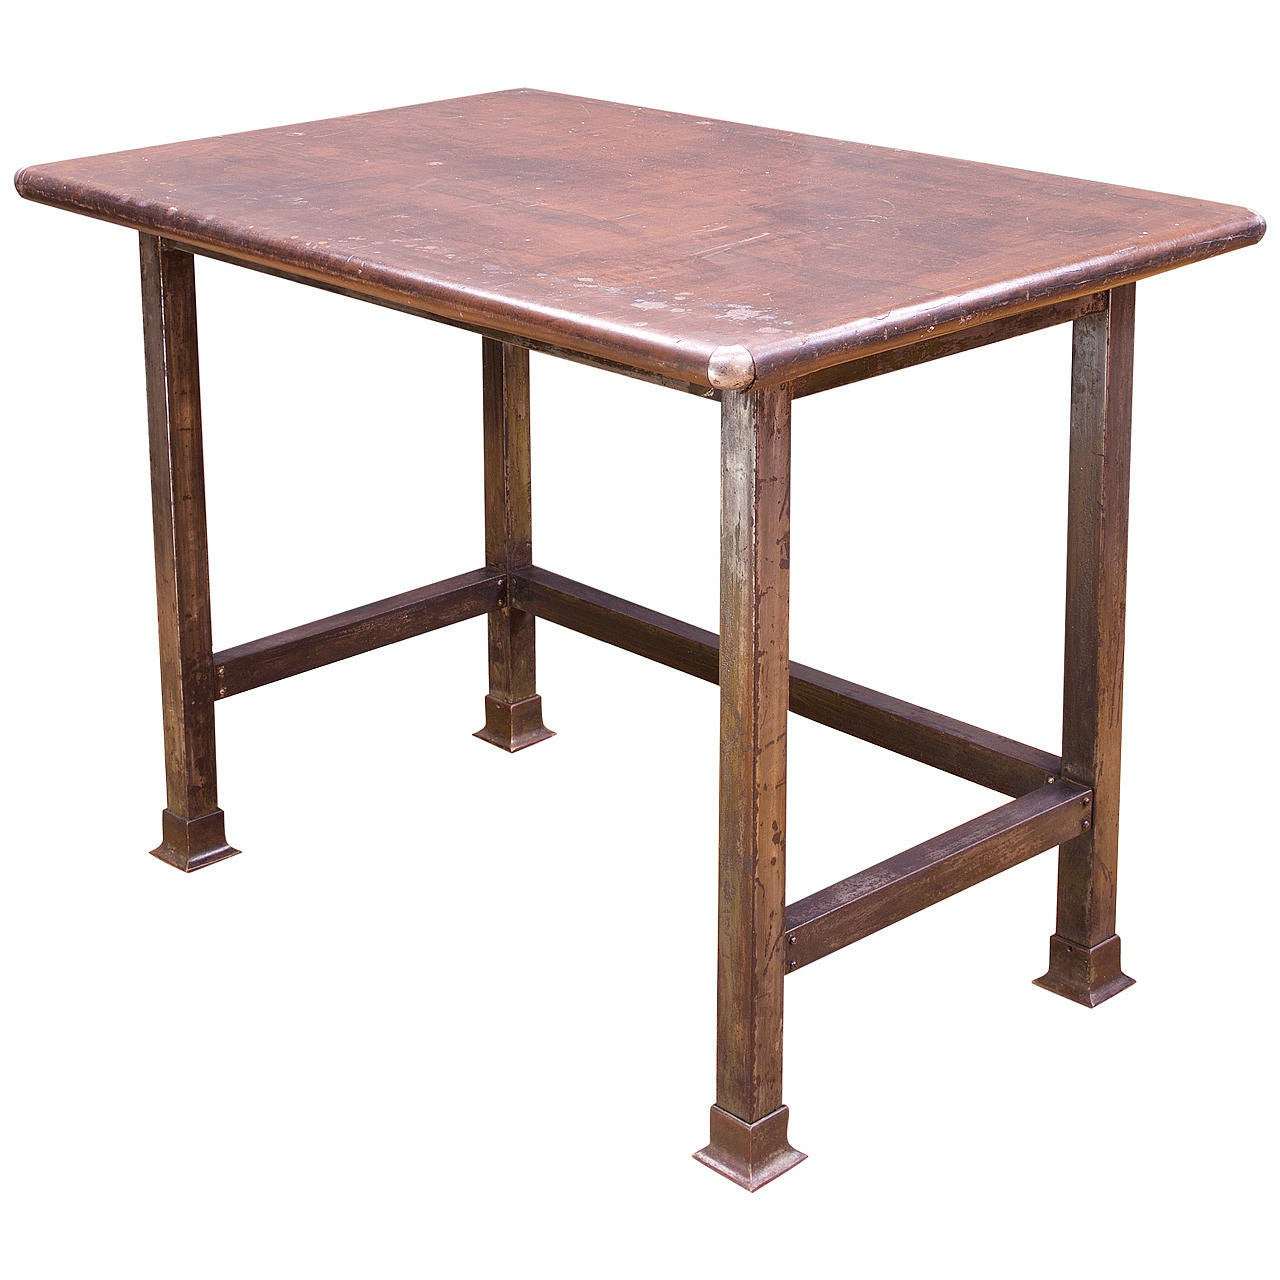 Industrial arborists assemblage table vulcanized work for Furniture work table